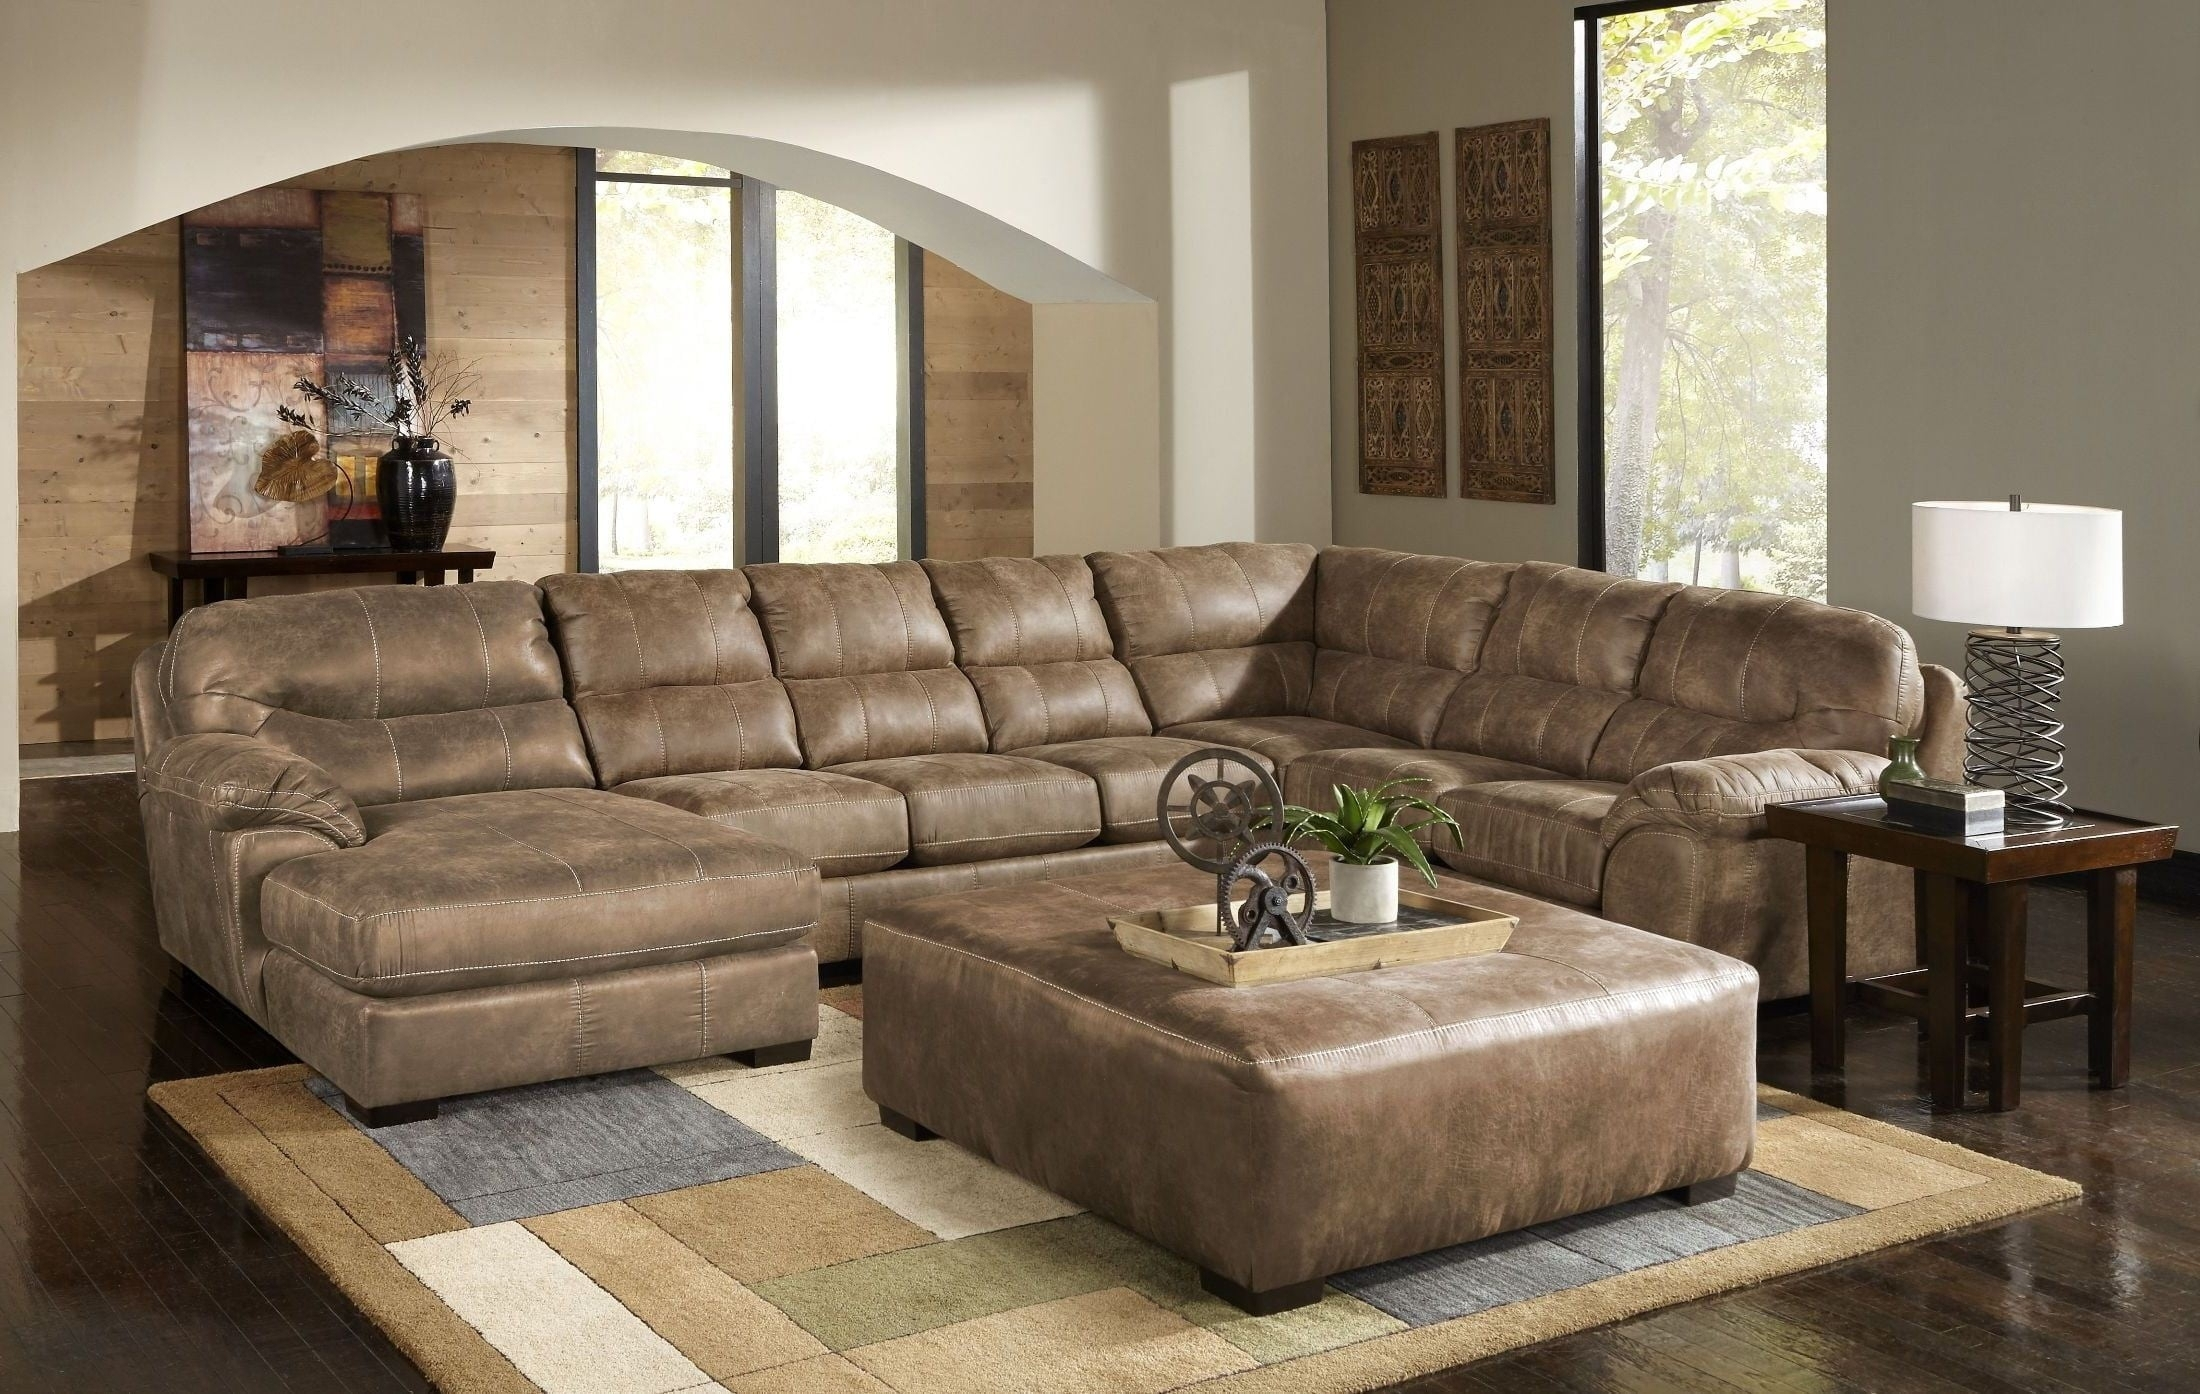 Grant Silt Laf Chaise Sectional, 4453-75-122749302749, Jackson with Avery 2 Piece Sectionals With Laf Armless Chaise